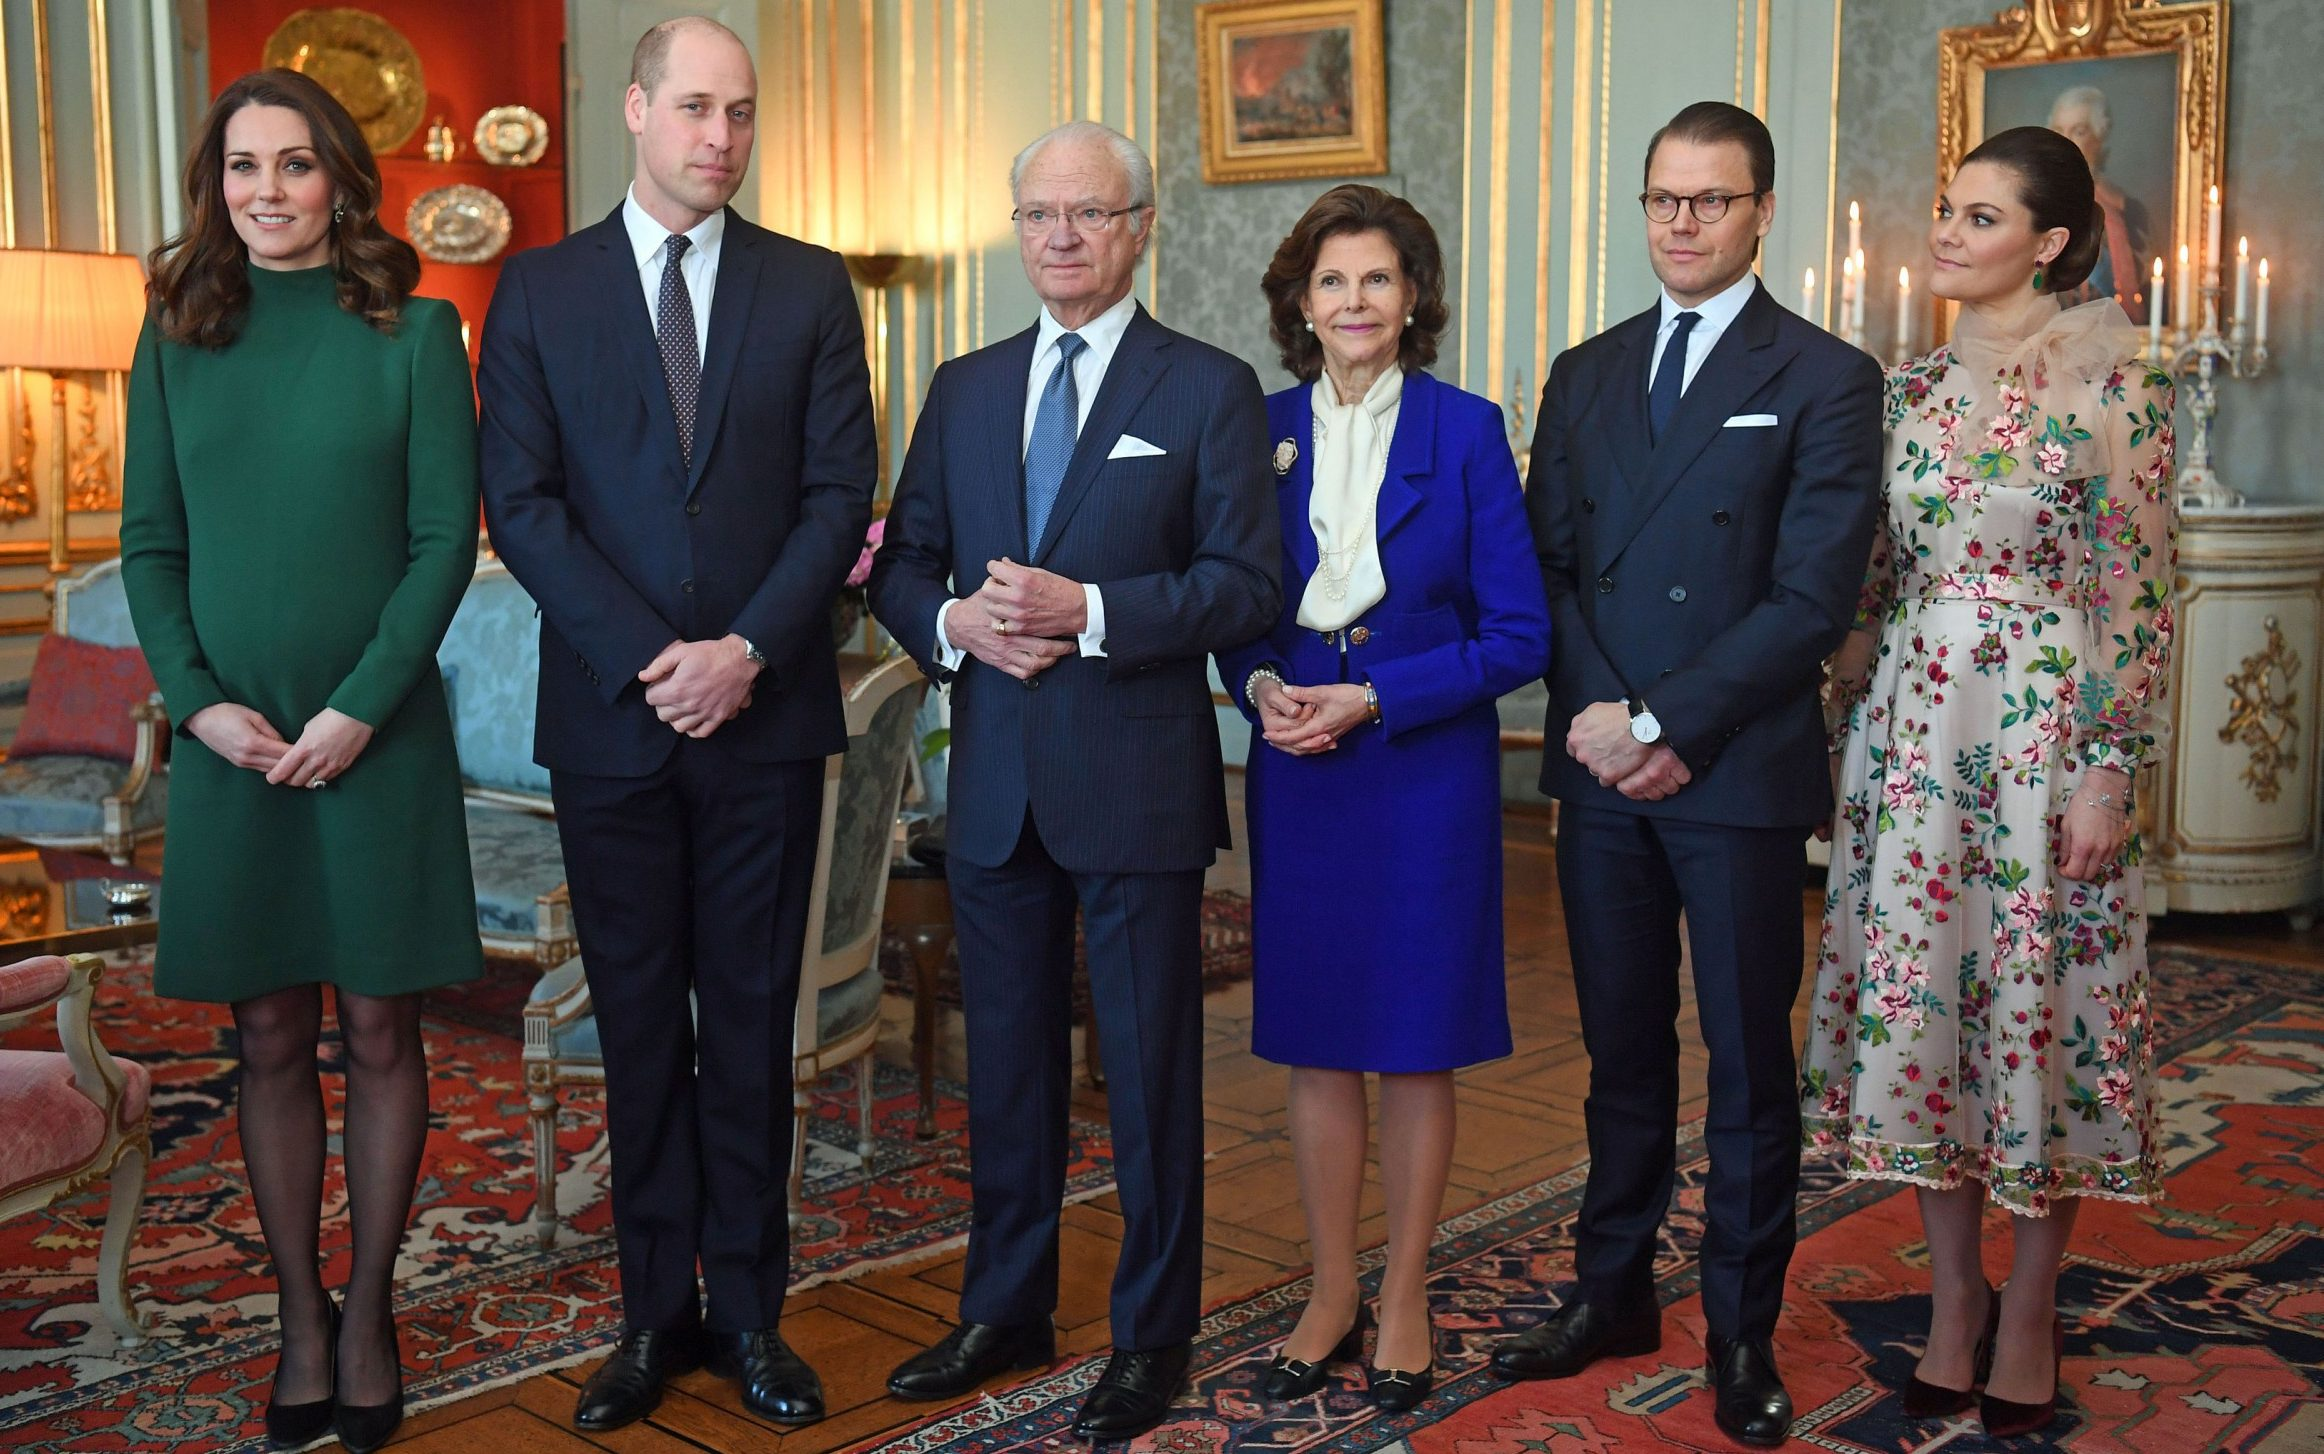 The Duke and Duchess of Cambridge are greeted by King Carl XVI Gustaf, Queen Silvia of Sweden, Prince Daniel and Victoria, Crown Princess of Sweden ahead of a lunch at the Royal Palace of Stockholm